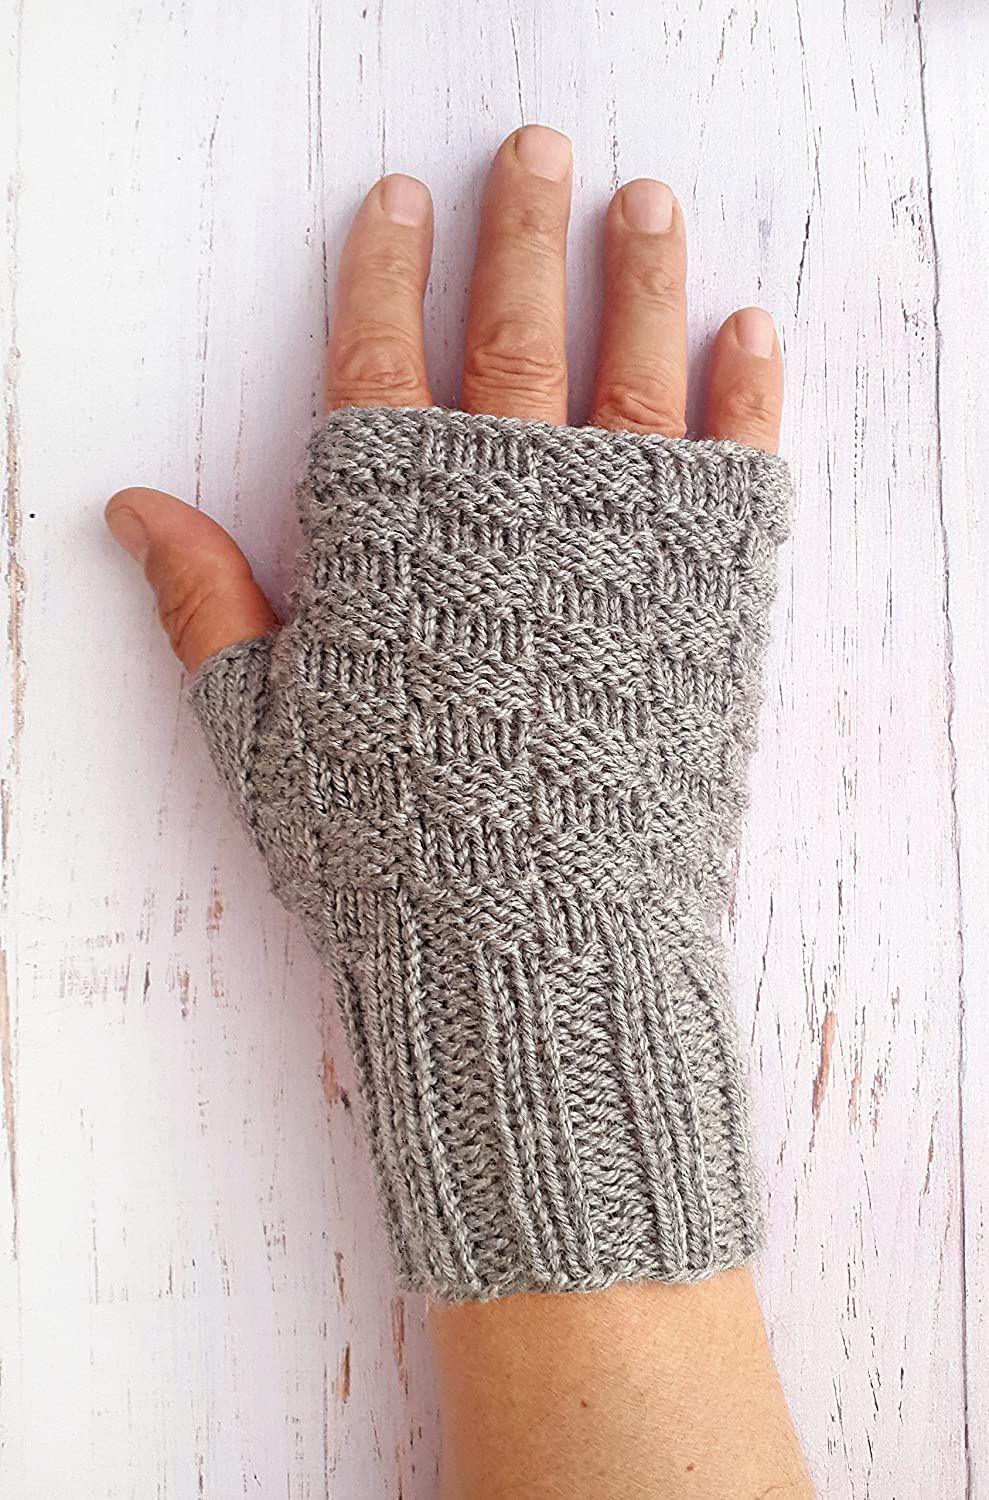 Men's knit gloves - Fingerless gloves men Men's knit gloves Men's gloves Gift for him